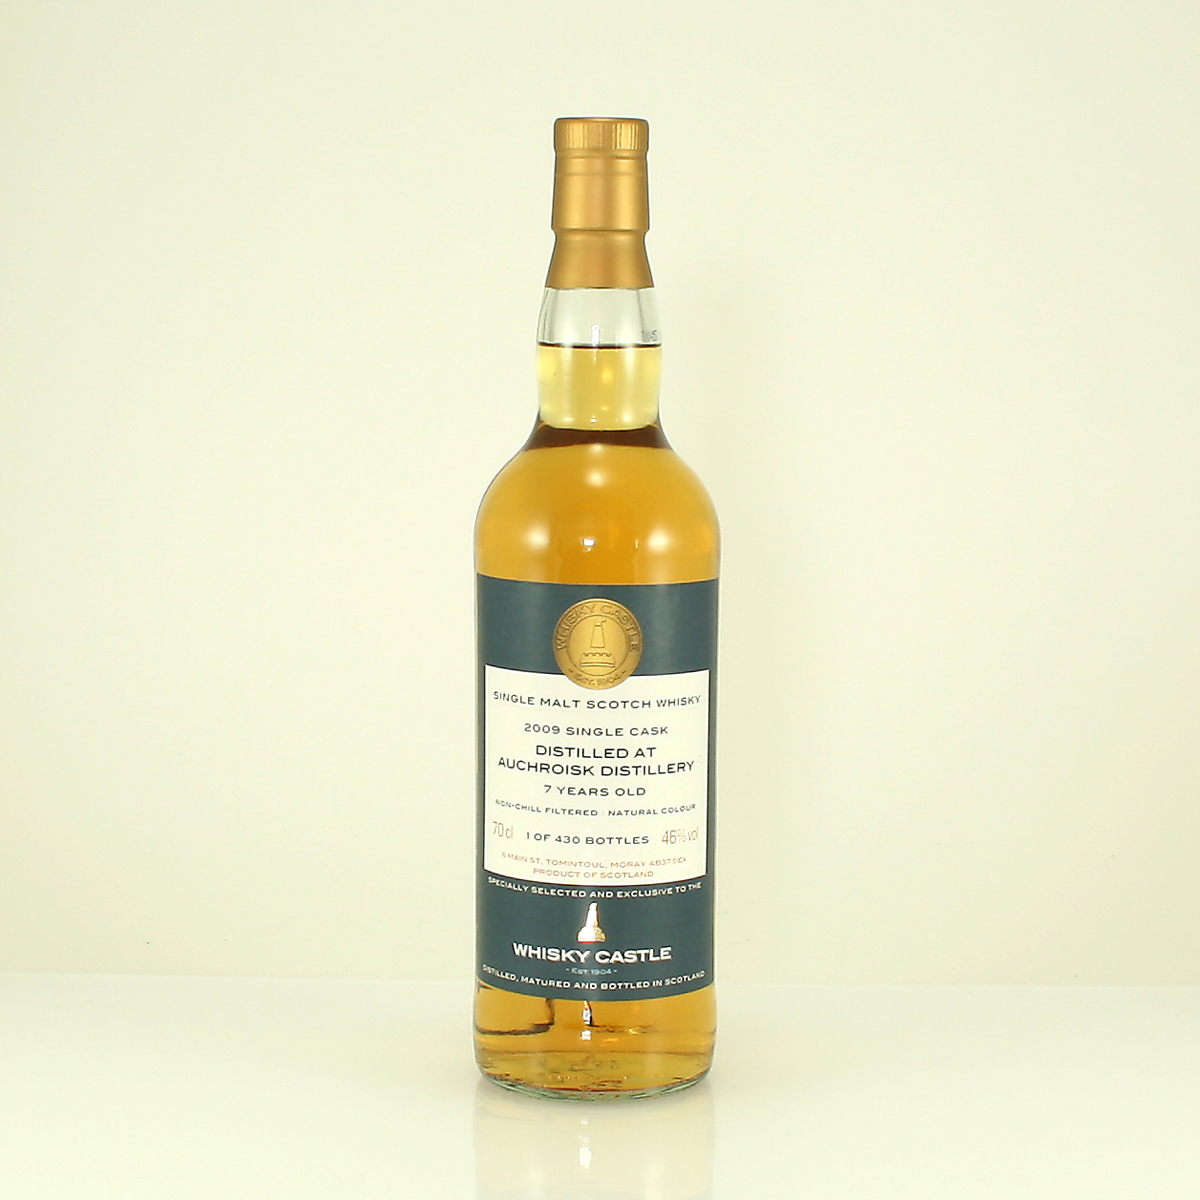 AUCHROISK 7 Y/O Whisky Castle Bottling 46% 70cl